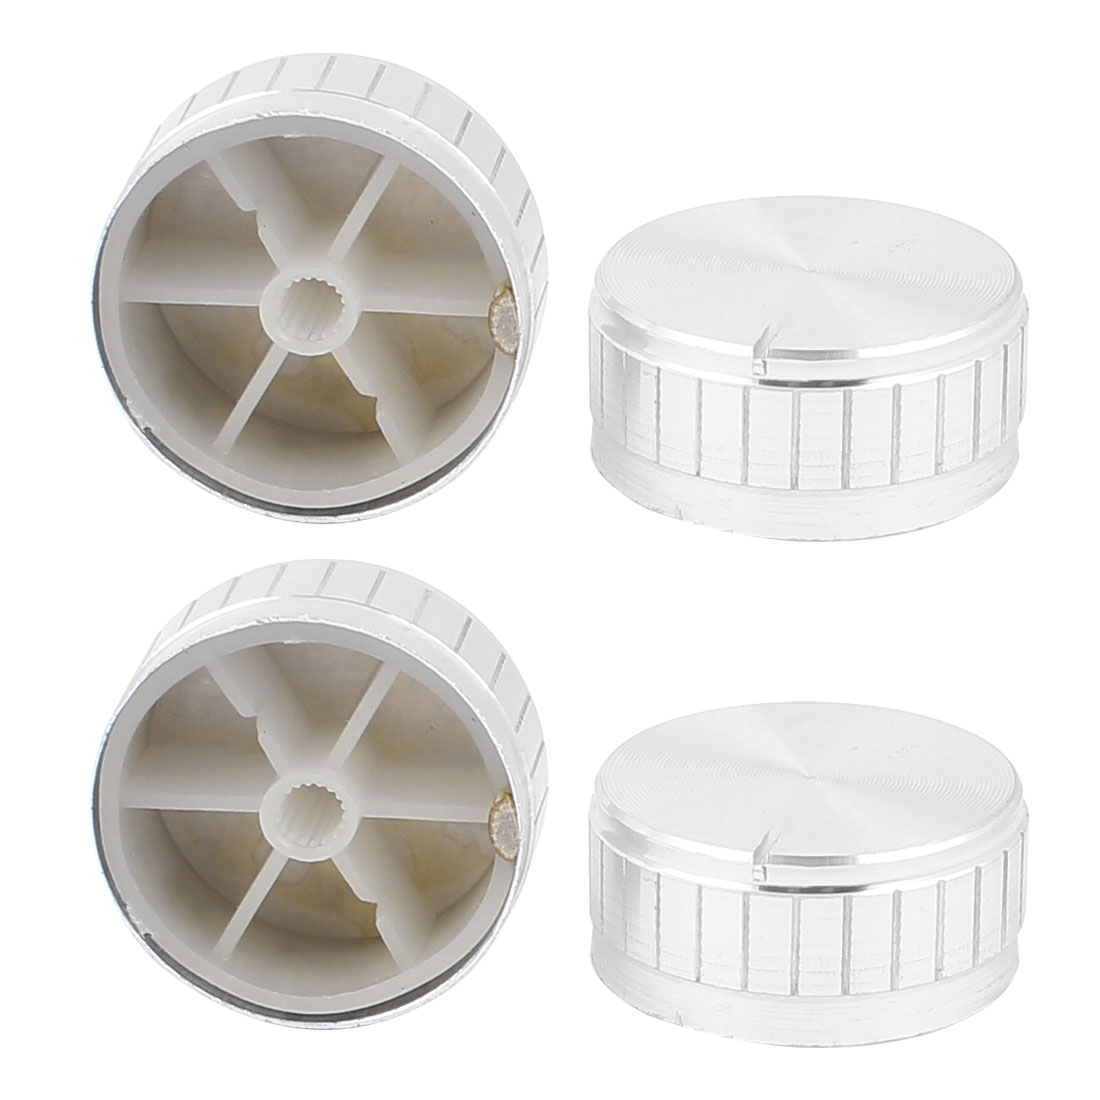 4 Pcs 40mm x 6mm Aluminium Alloy Potentiometer Control Knob Volume Cap Knurled Button Silver Tone